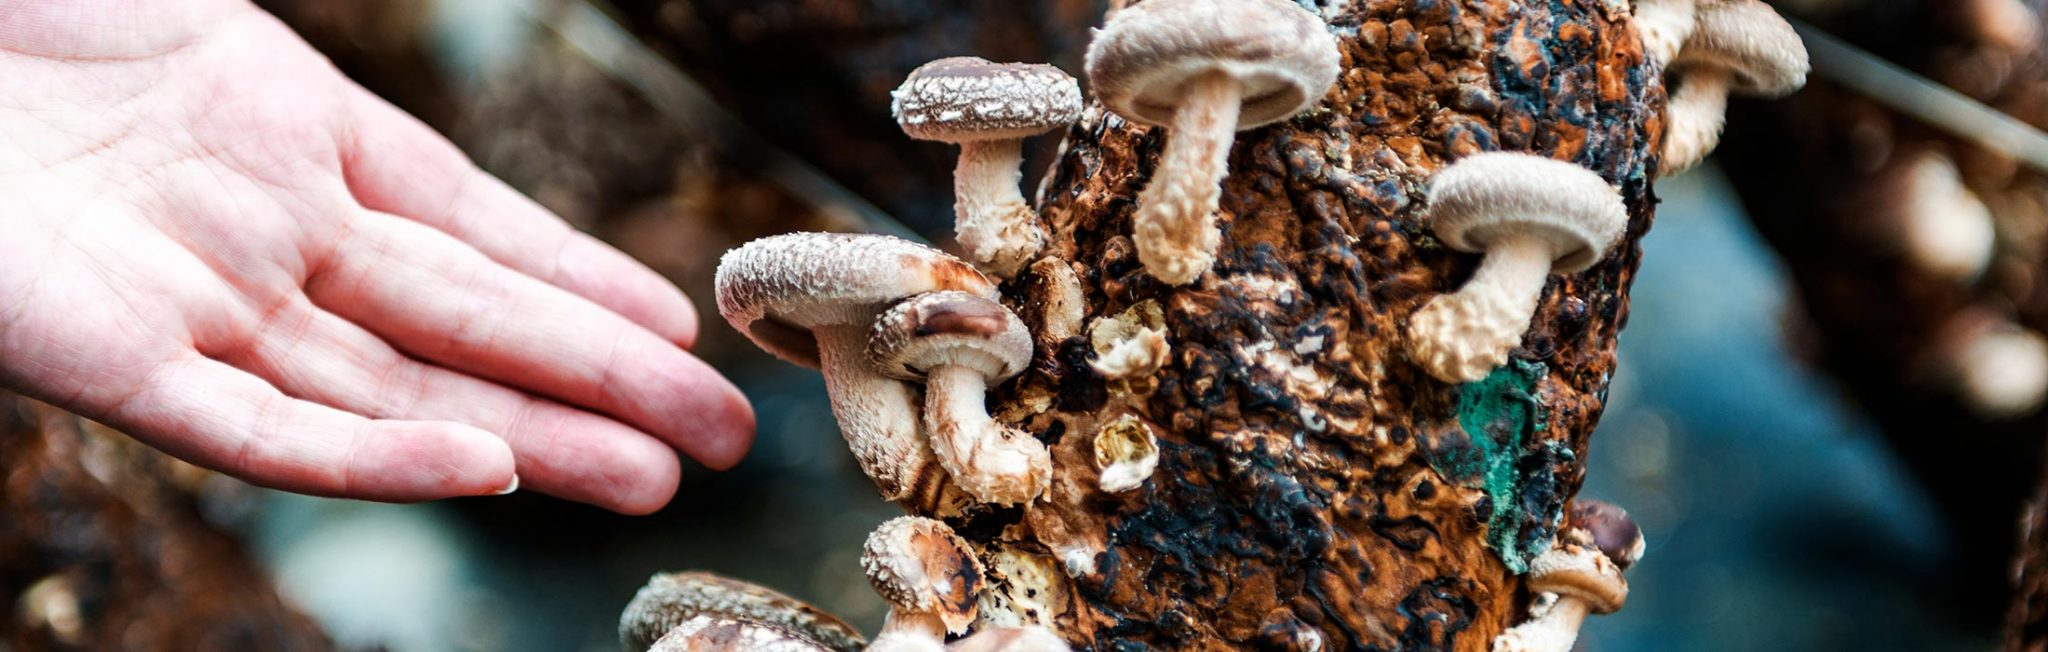 Low Cost and Low Tech Methods For Growing Mushrooms - Aloha Medicinals